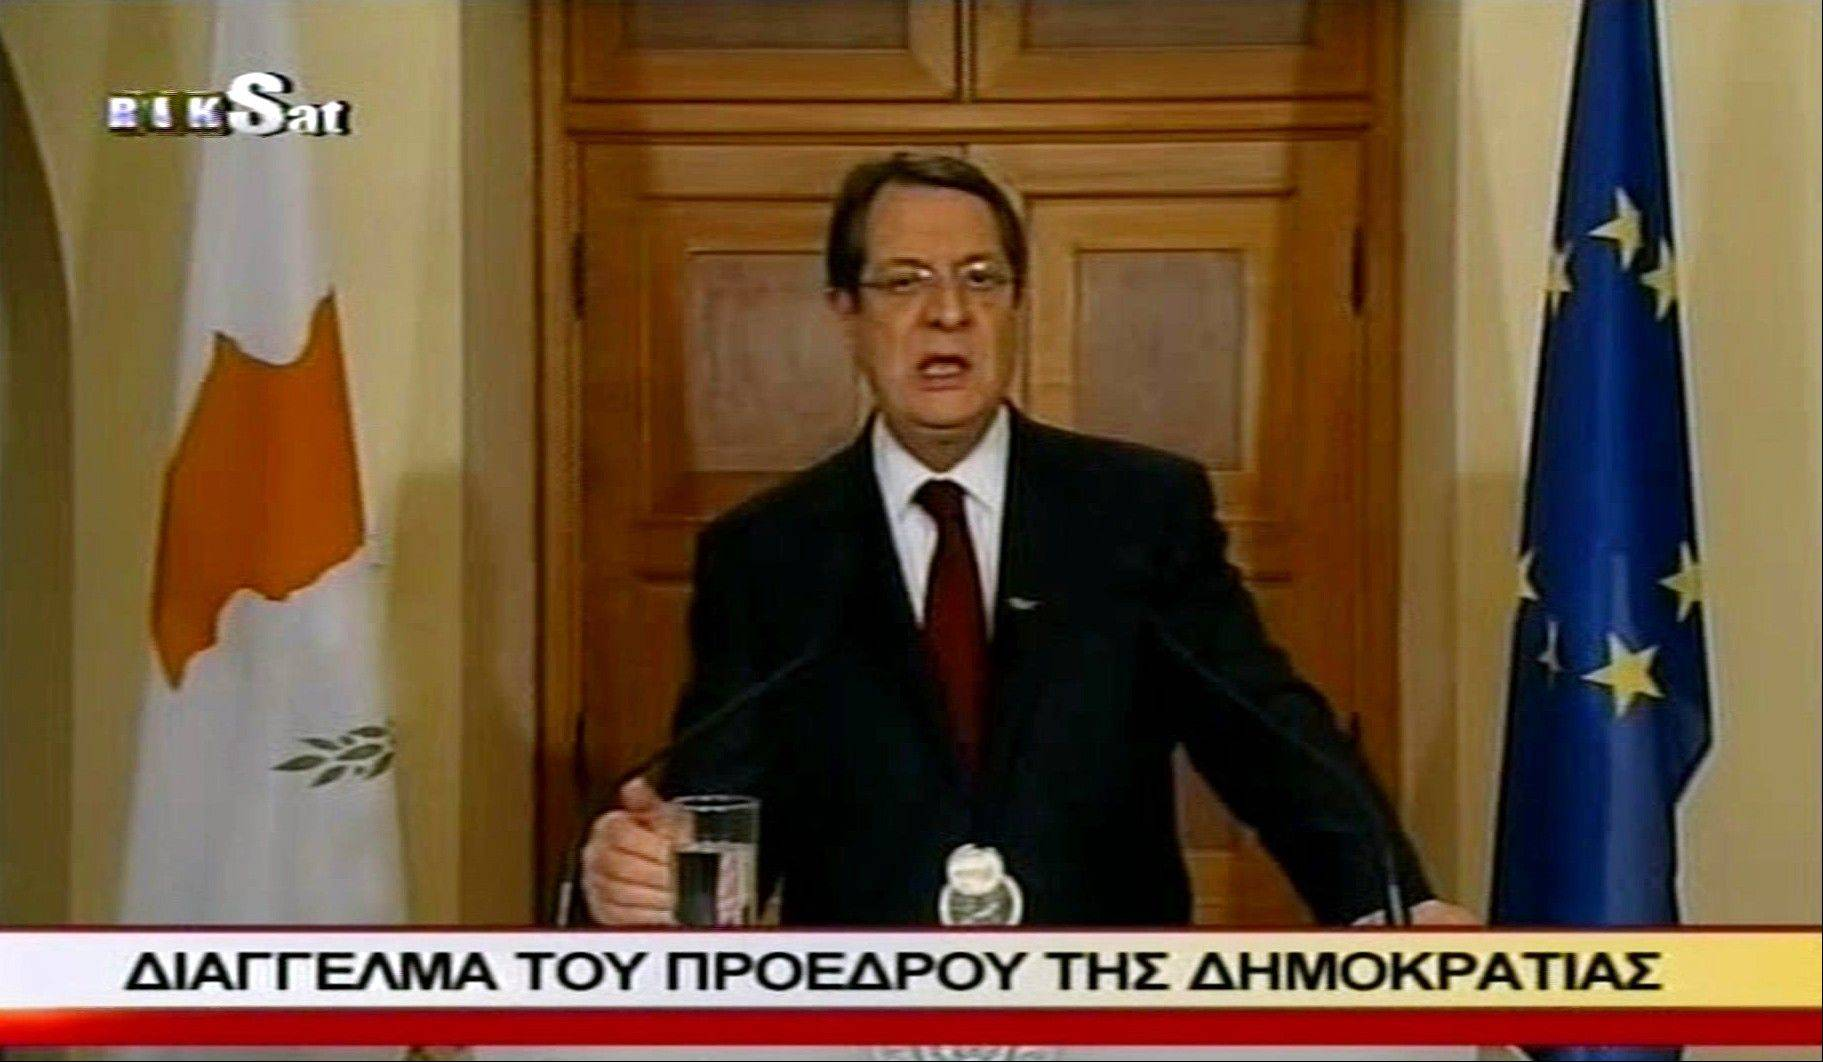 In this image made from video, Cyprus� president Nikos Anastasiades addresses the nation in a televised broadcast Sunday. He said he is trying to amend a detested bailout plan that would tax bank deposits across the country to reduce its effect on small savers.